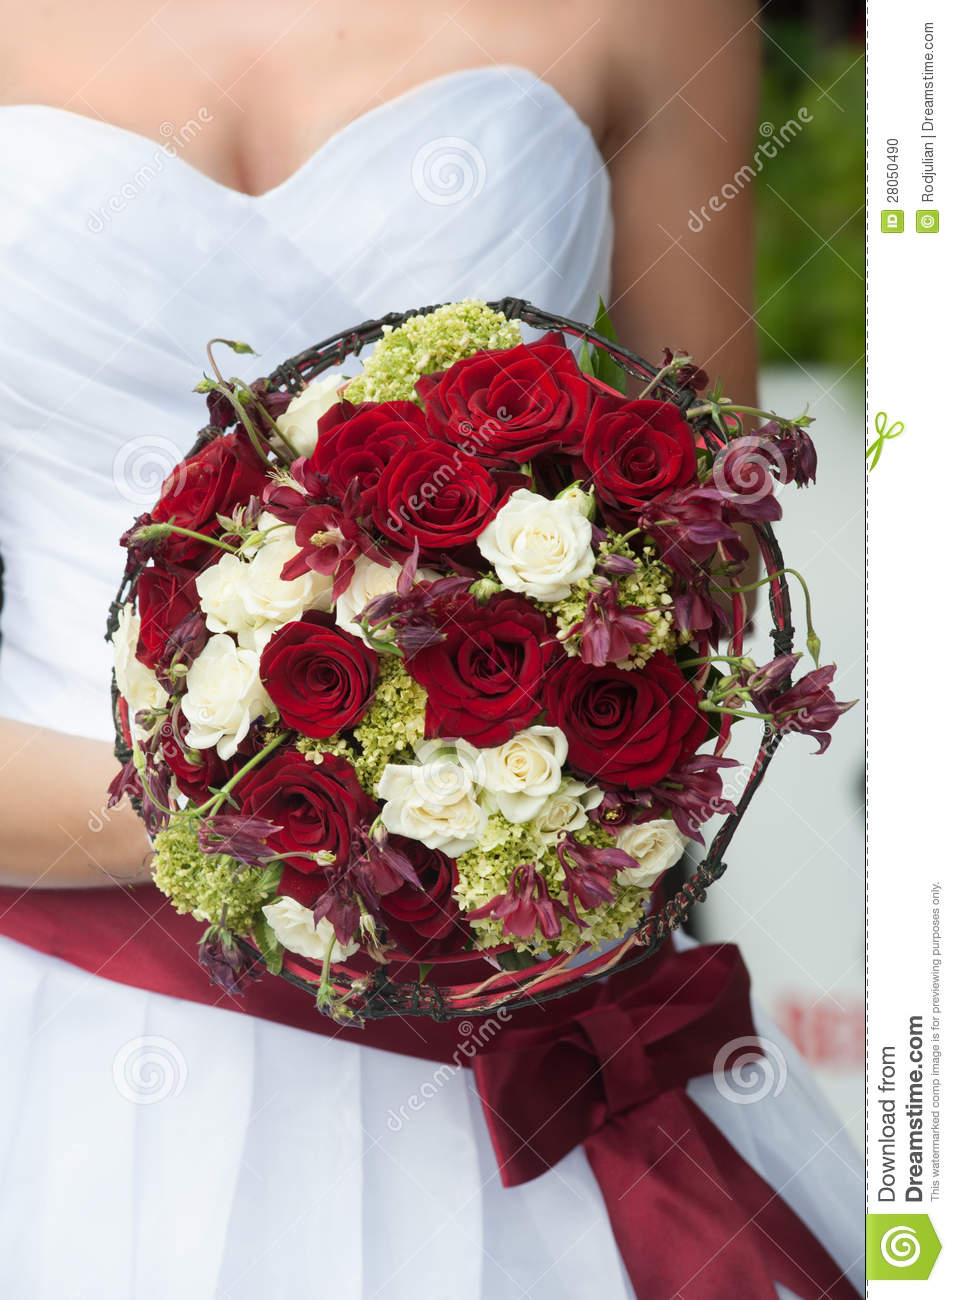 Wedding bouquet with red and white roses stock photo image of wedding bouquet with red and white roses mightylinksfo